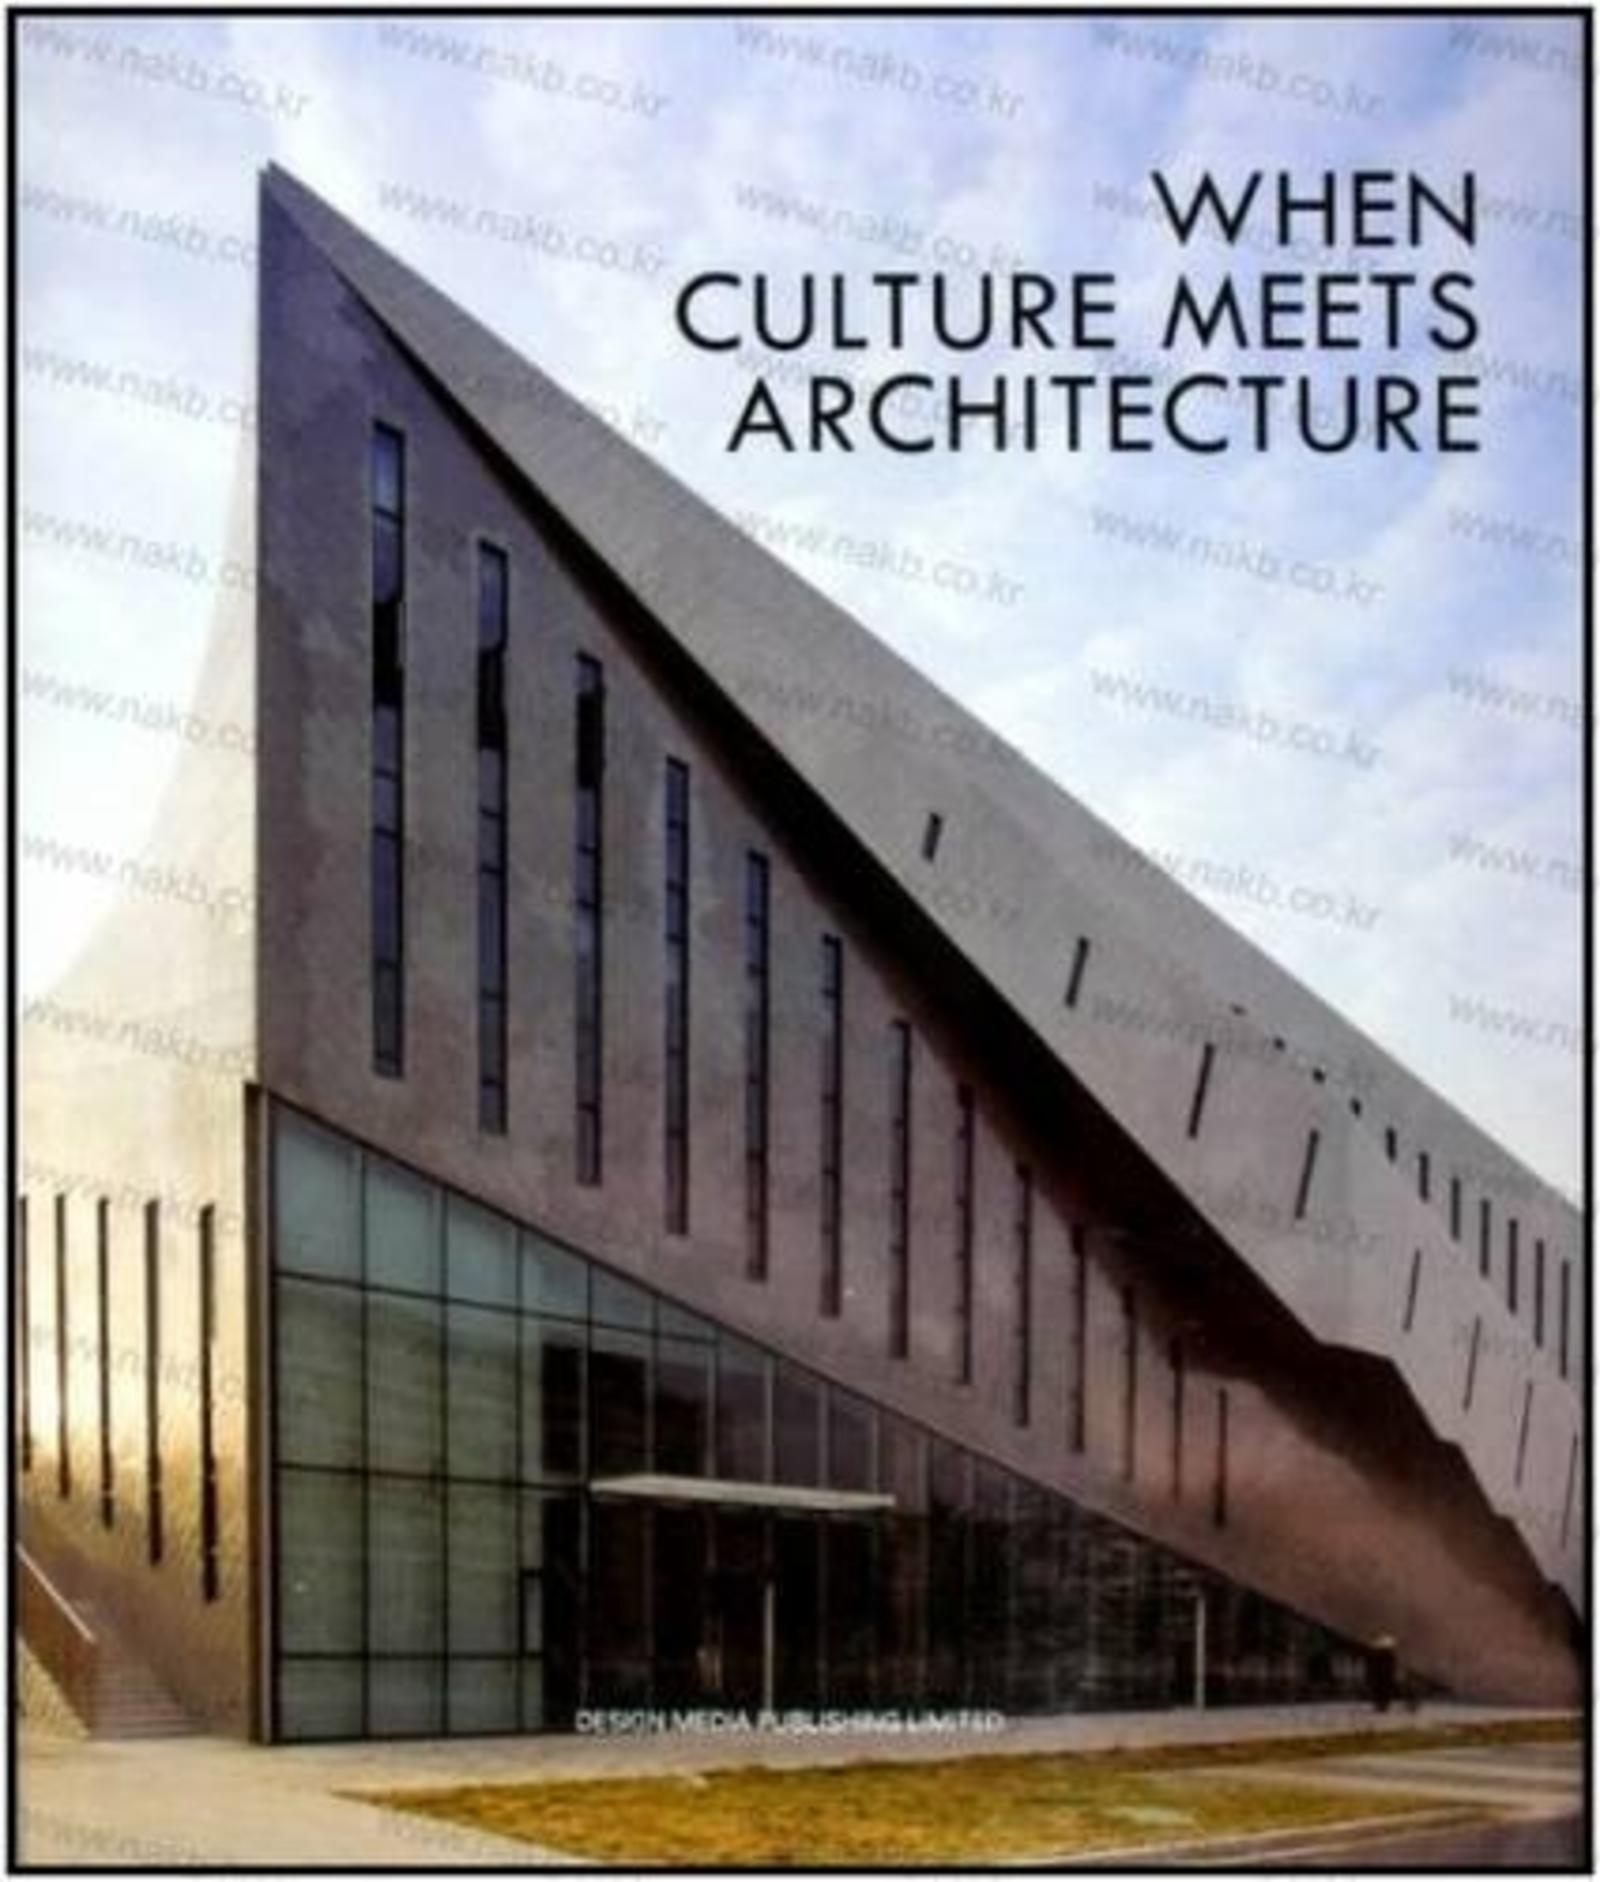 WHEN CULTURE MEETS ARCHITECTURE